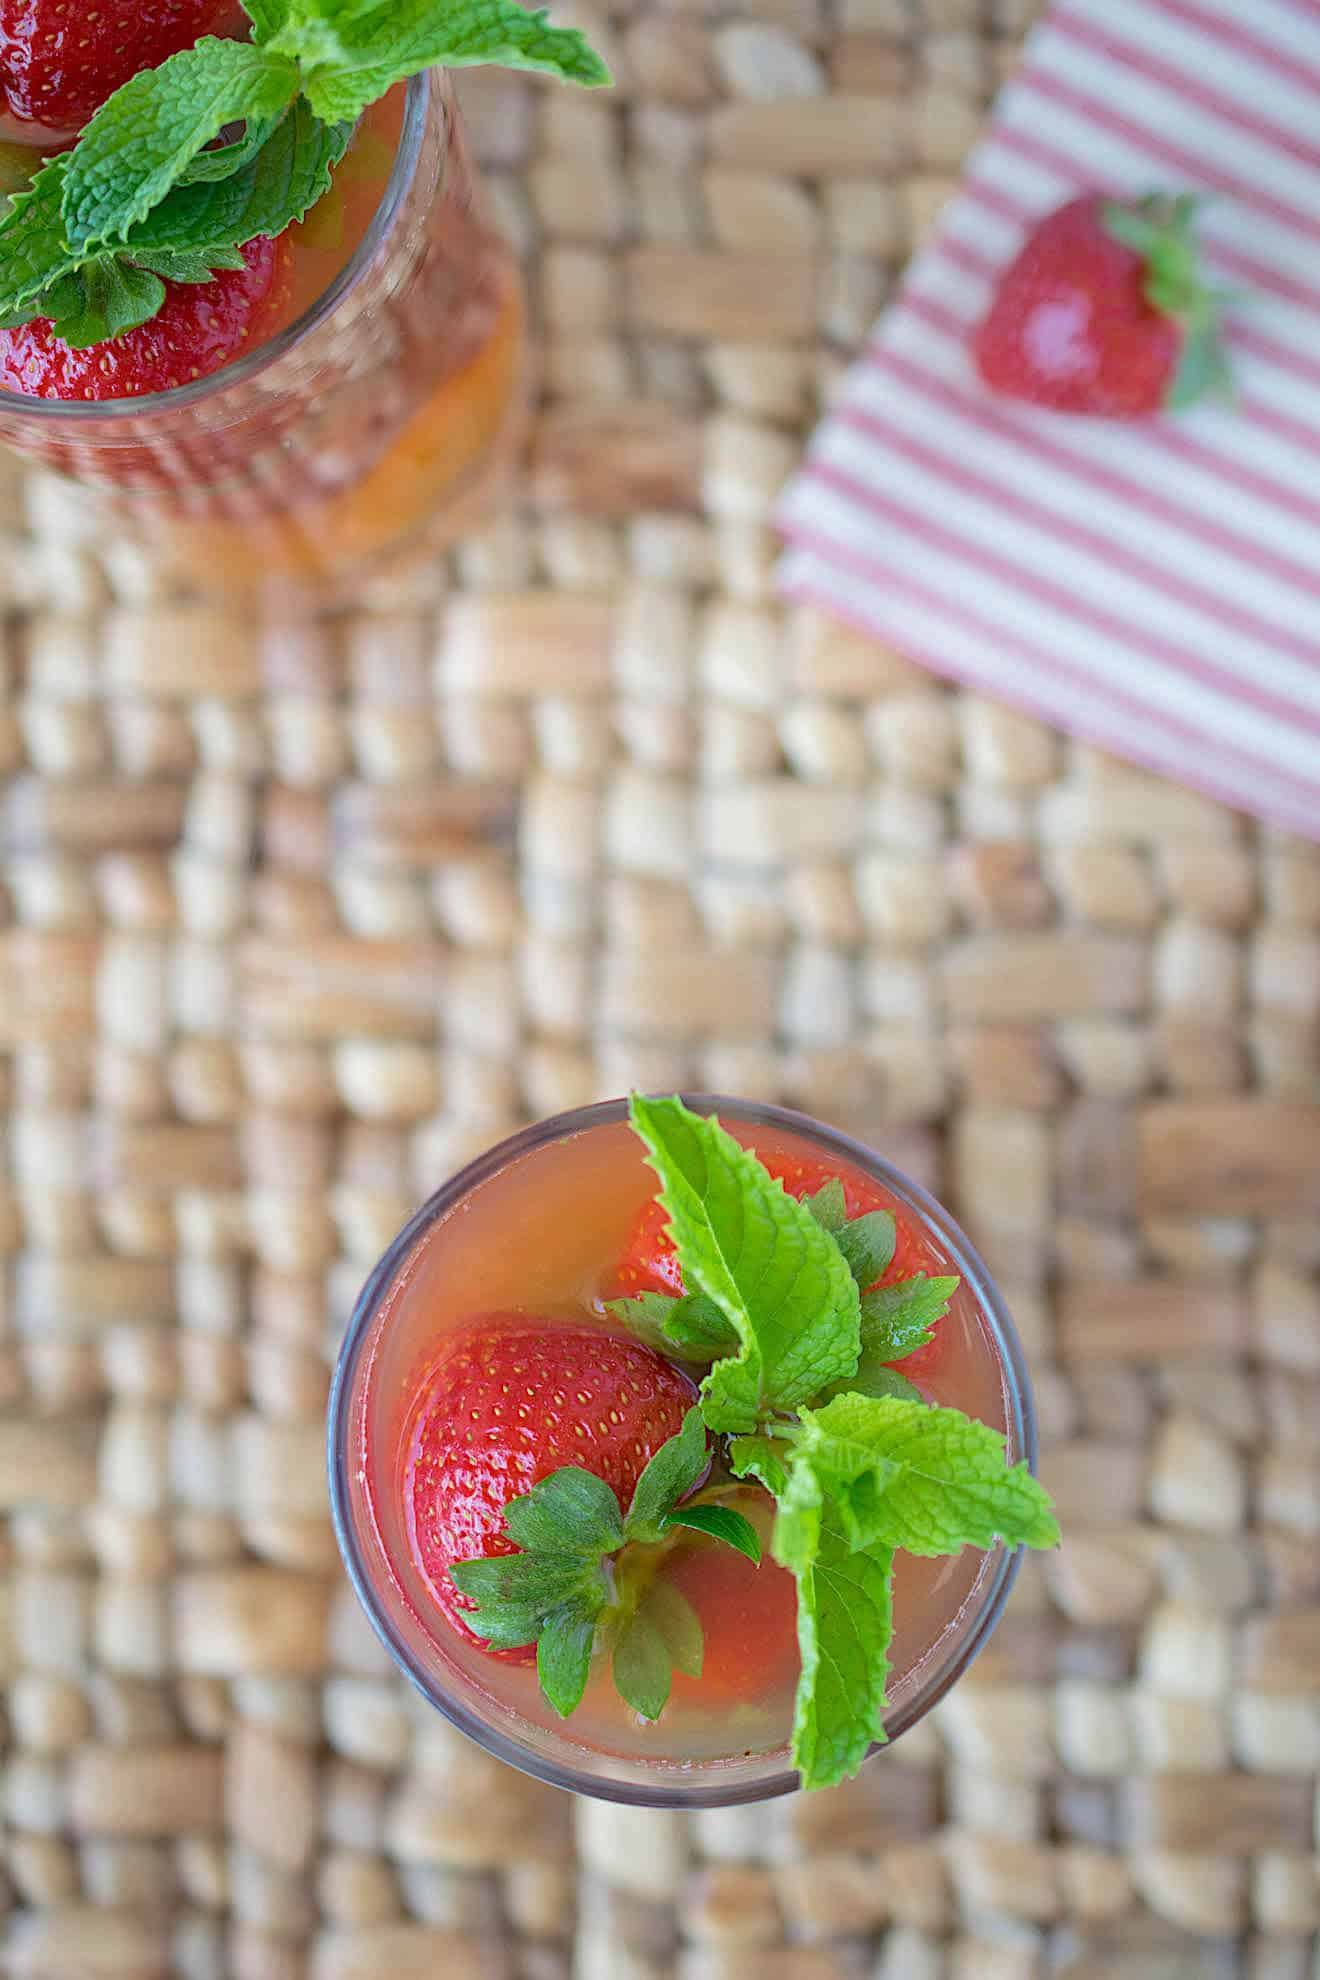 The drink viewed from overhead showing the green mint leaves and beautiful strawberry